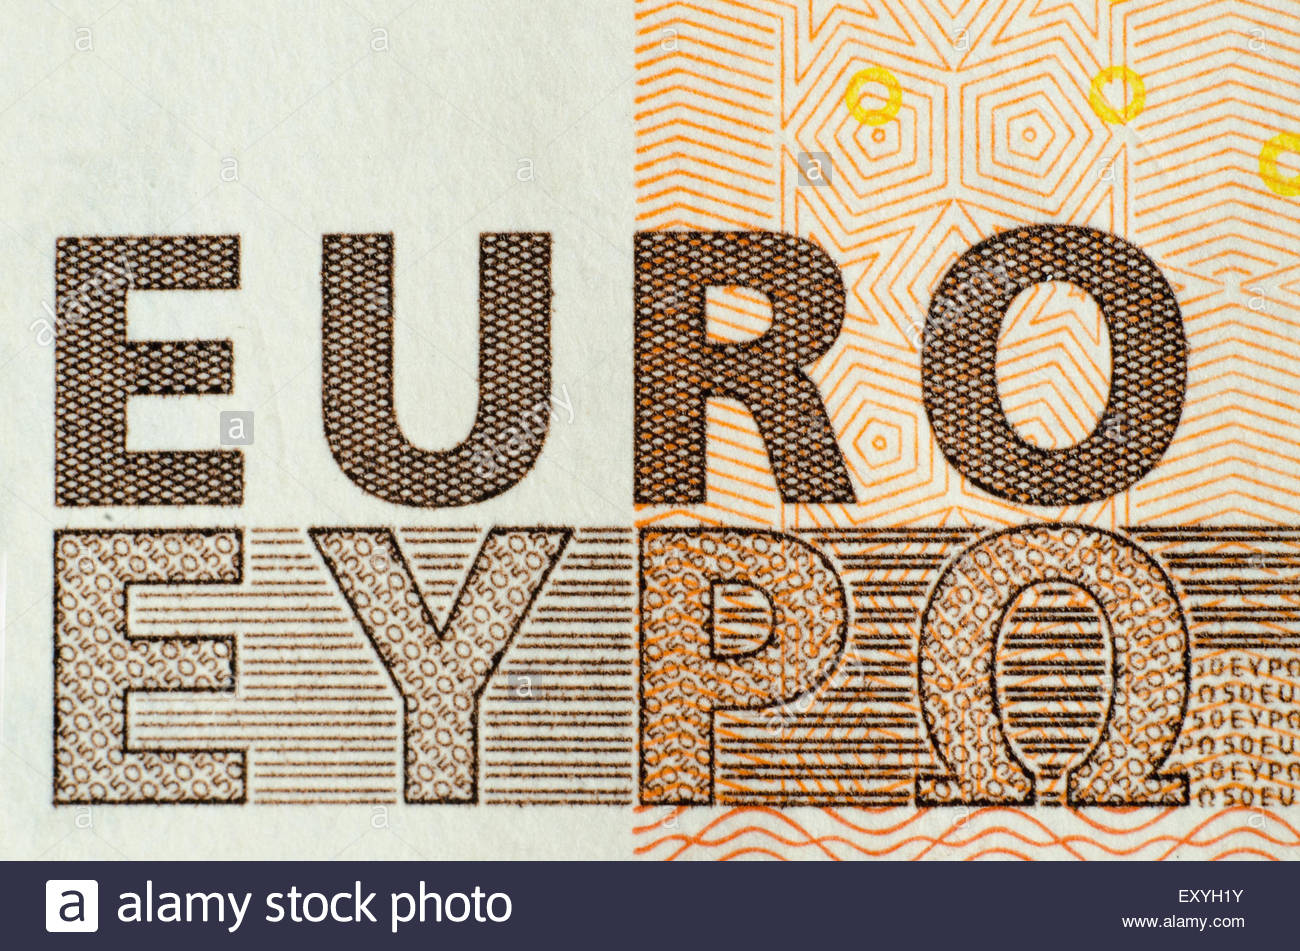 Euro Word International And Greek Symbols In An 50 Euro Banknote